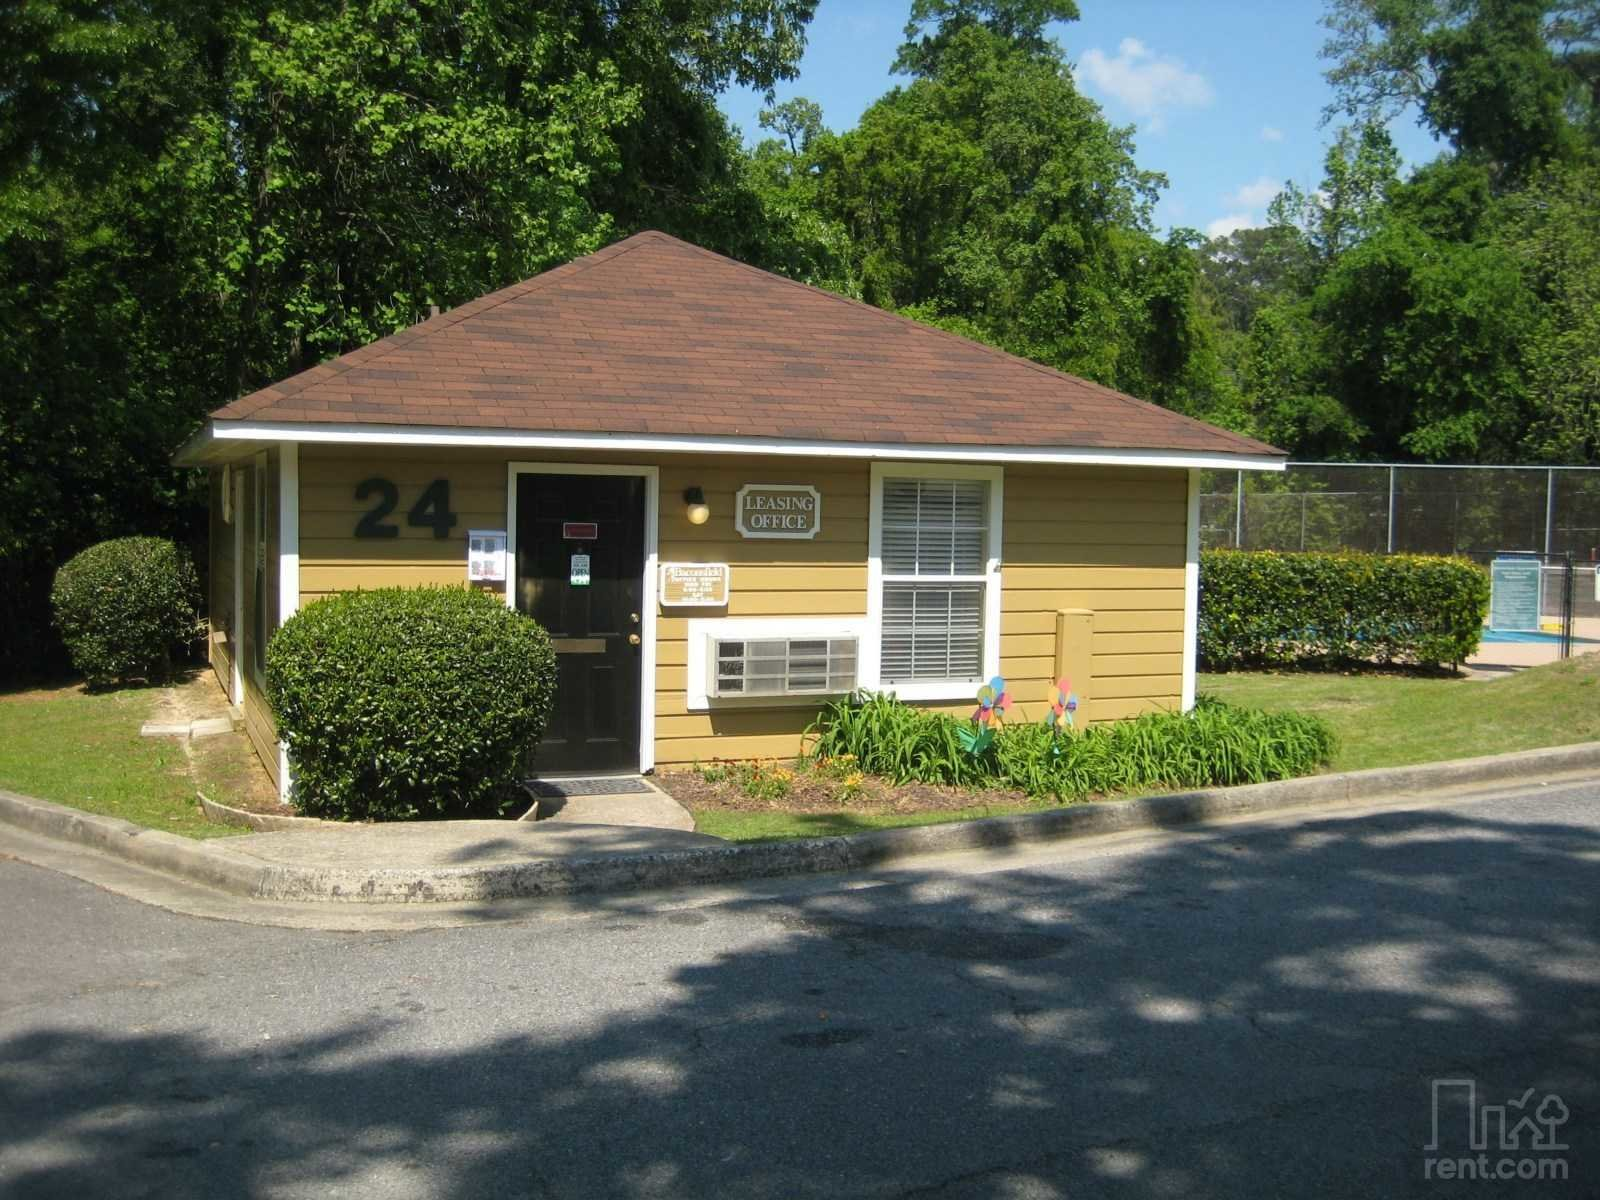 Best 2 Bedroom Houses For Rent In Macon Ga 6 Rental Homes With Pictures